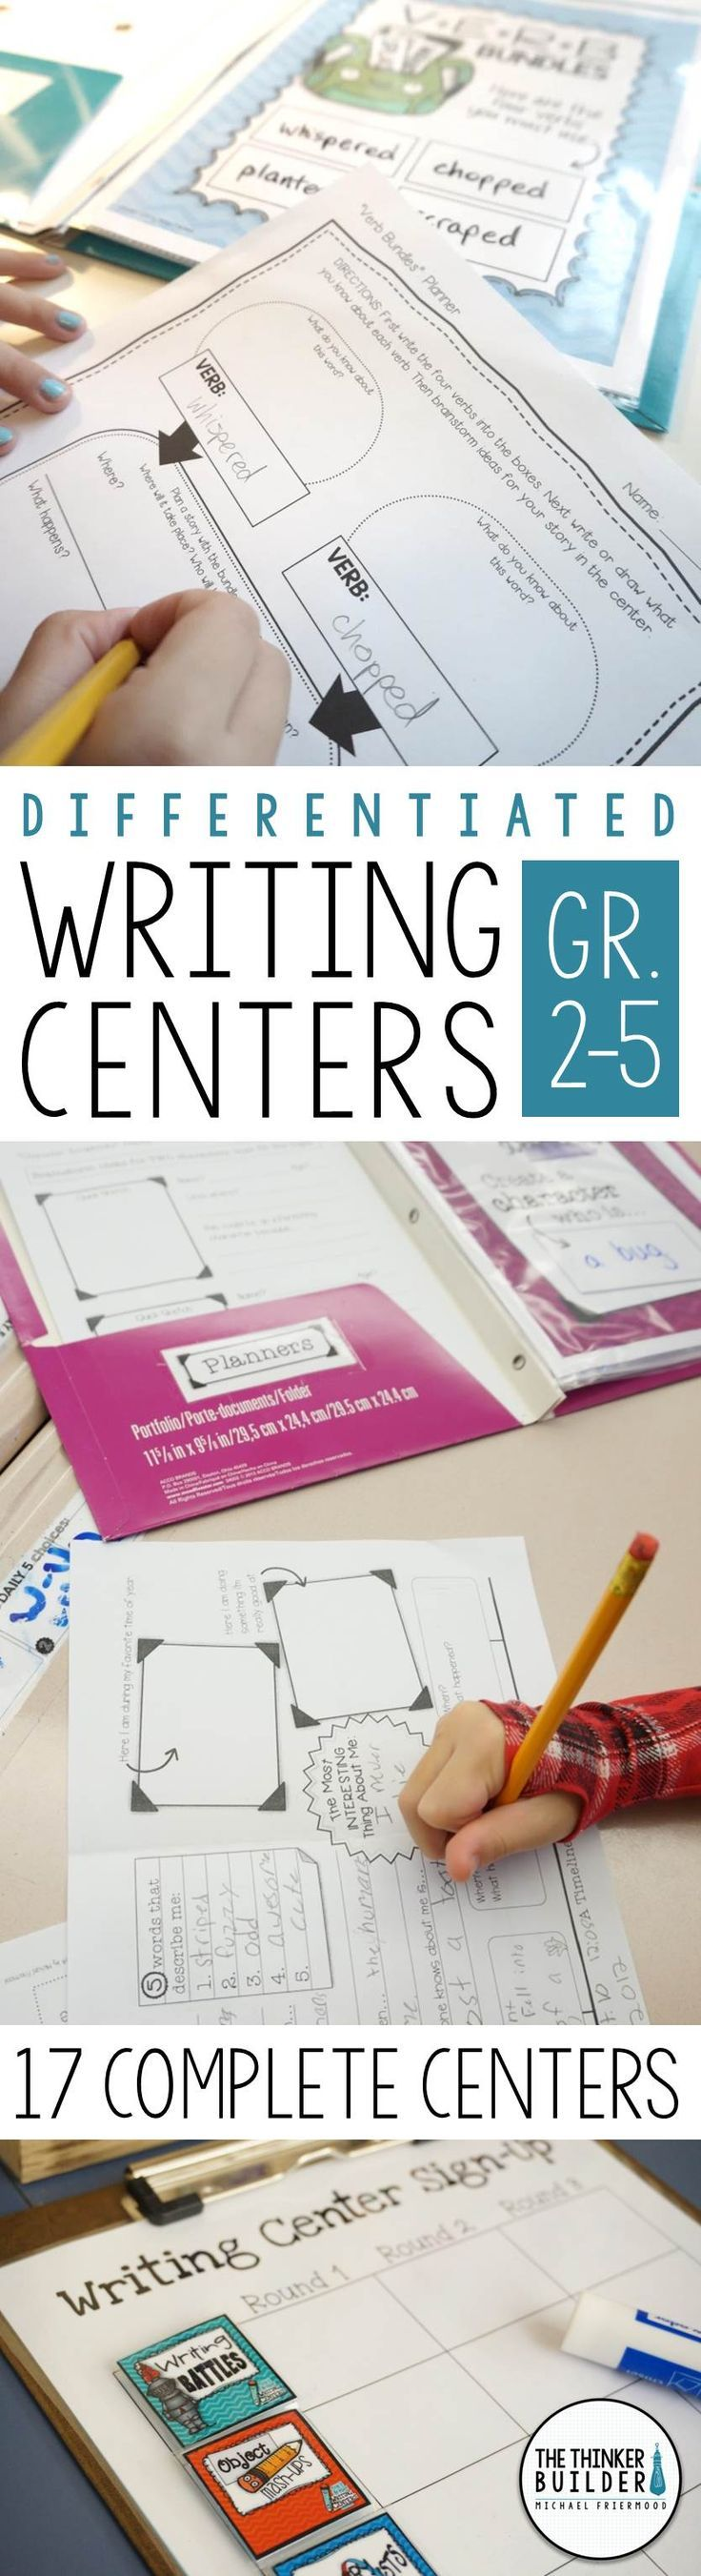 Engaging, differentiated writing centers that give students a variety of meaningful writing practice. Each center includes student directions, planning organizer, writing paper, and writing tips. Includes assembly instructions, sign-up charts, and record sheets to make the centers EASY TO MANAGE, as well as extensive idea lists that make the centers EASY TO KEEP FRESH. 17 complete centers included in the bundle. Gr 2-5 ($)